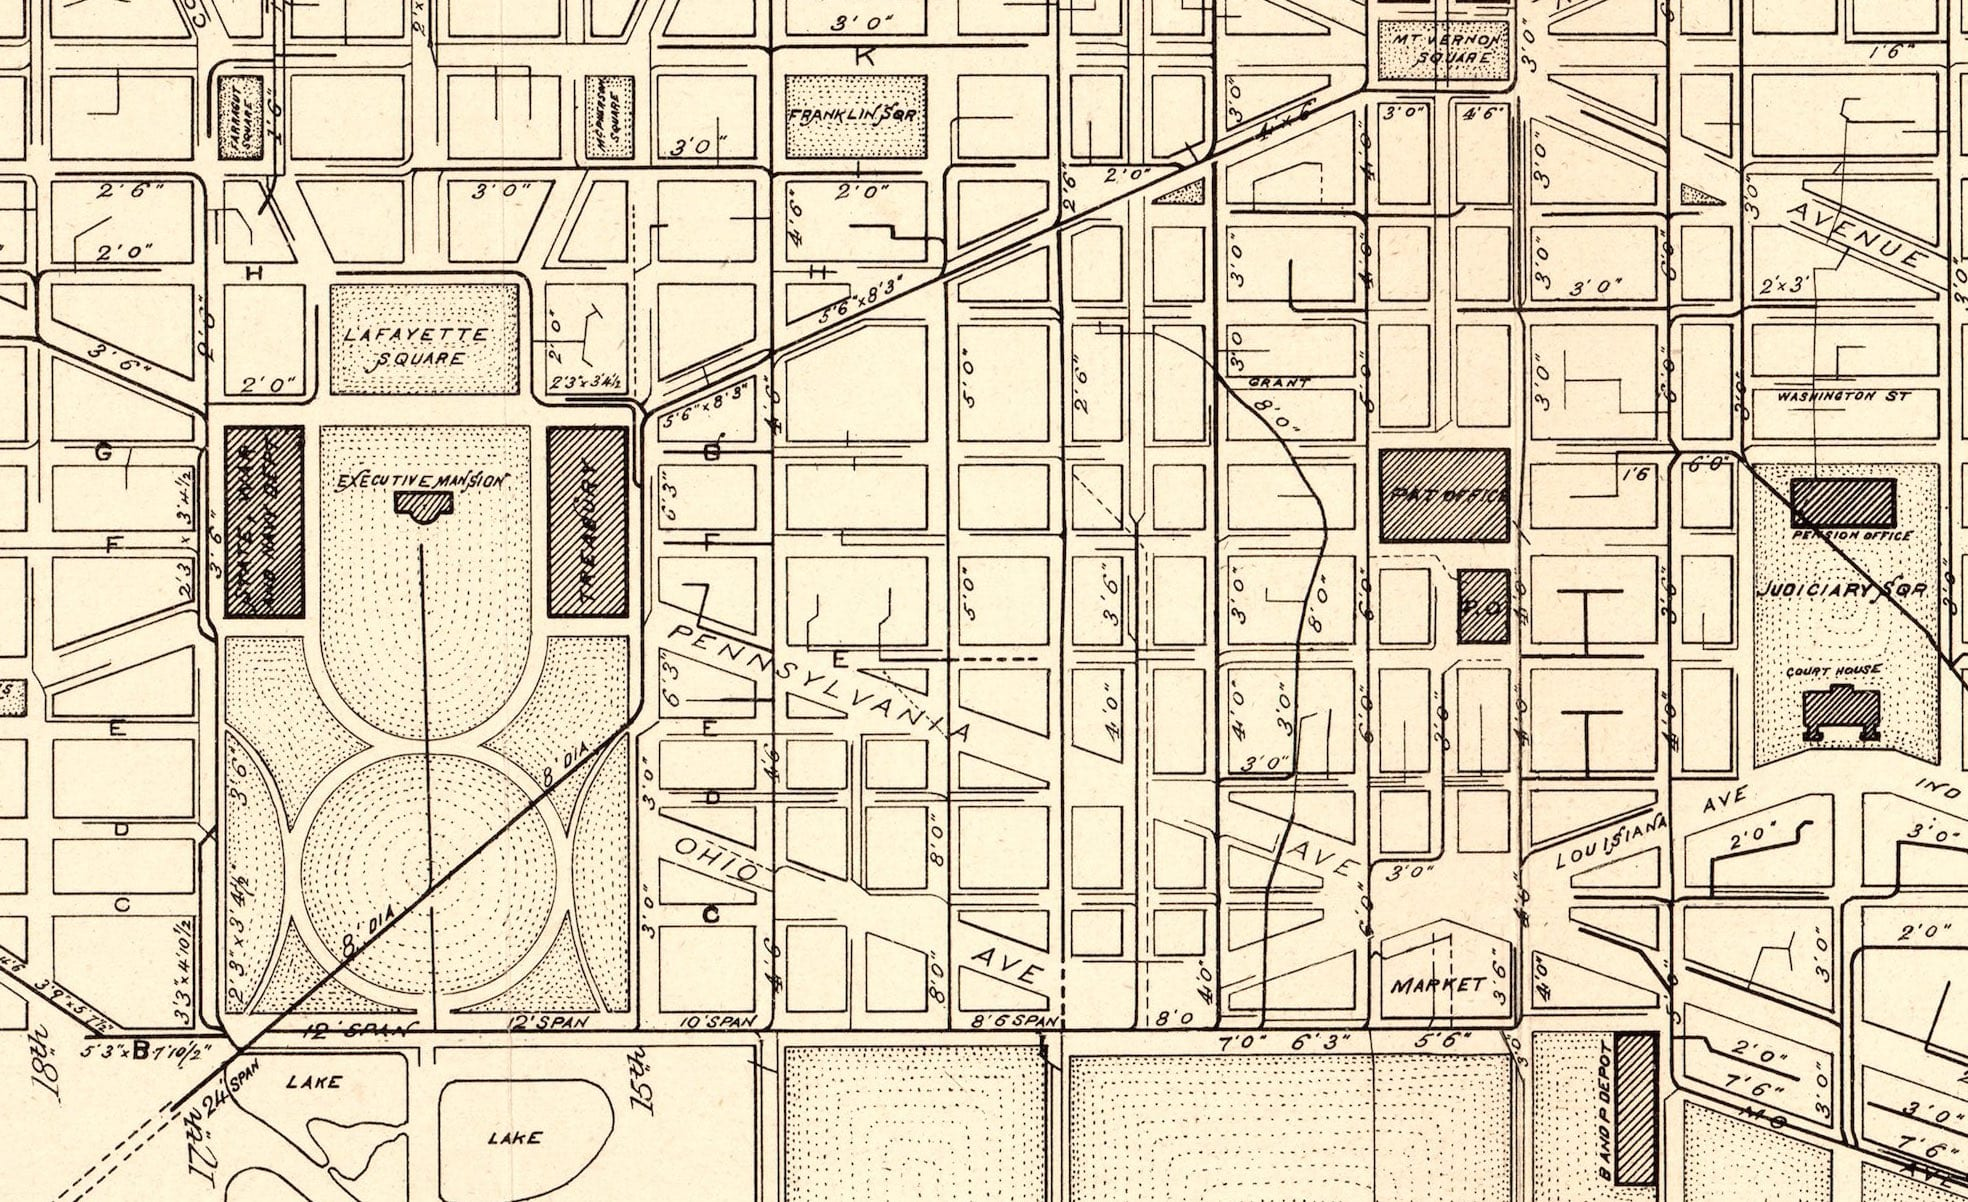 1885 Map of Washington Sewers and Water Mains